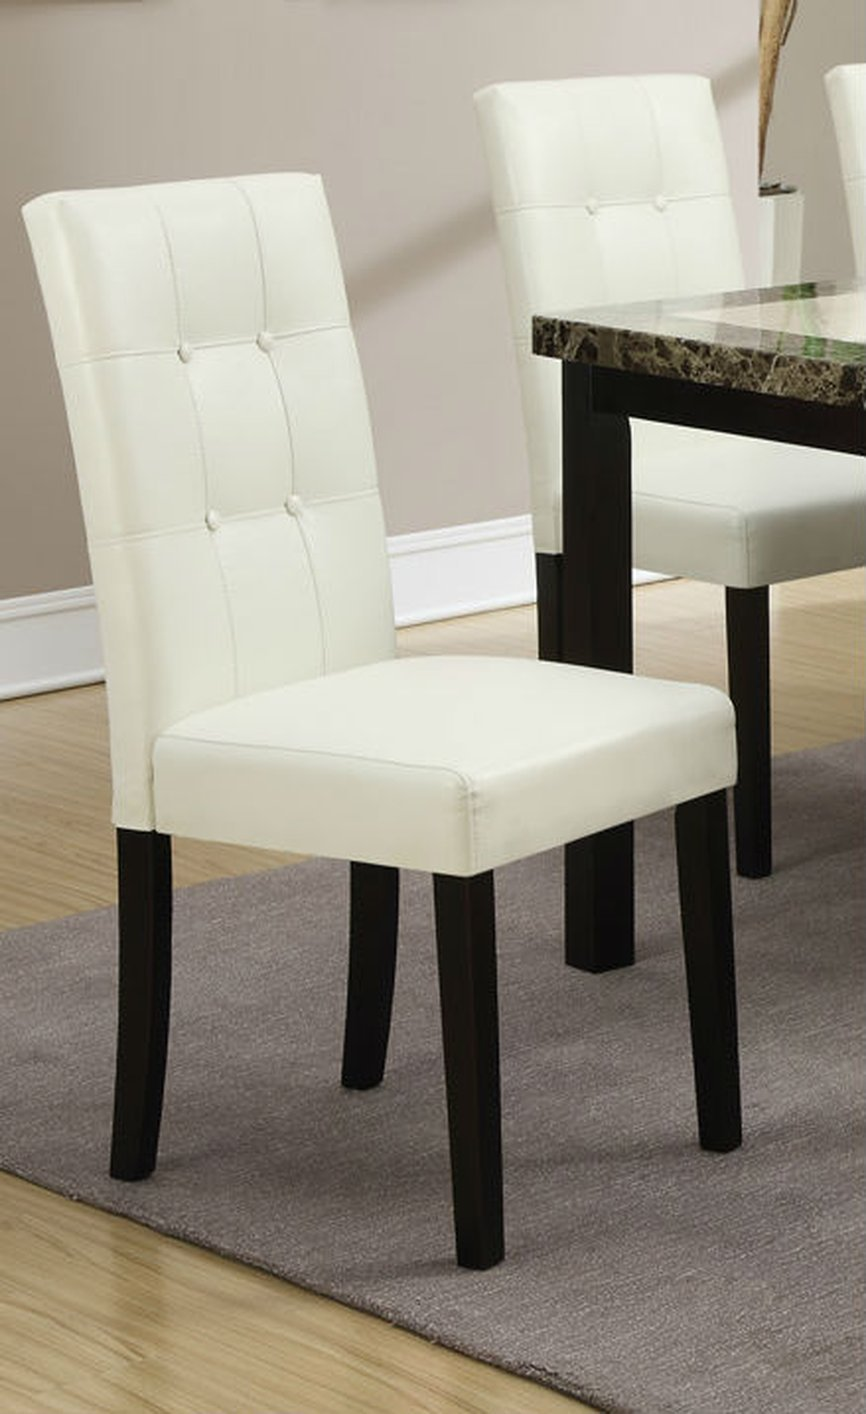 Set Of 2 White Faux Leather Dining Chair With Wood Frame And Button Tufting  Back Support